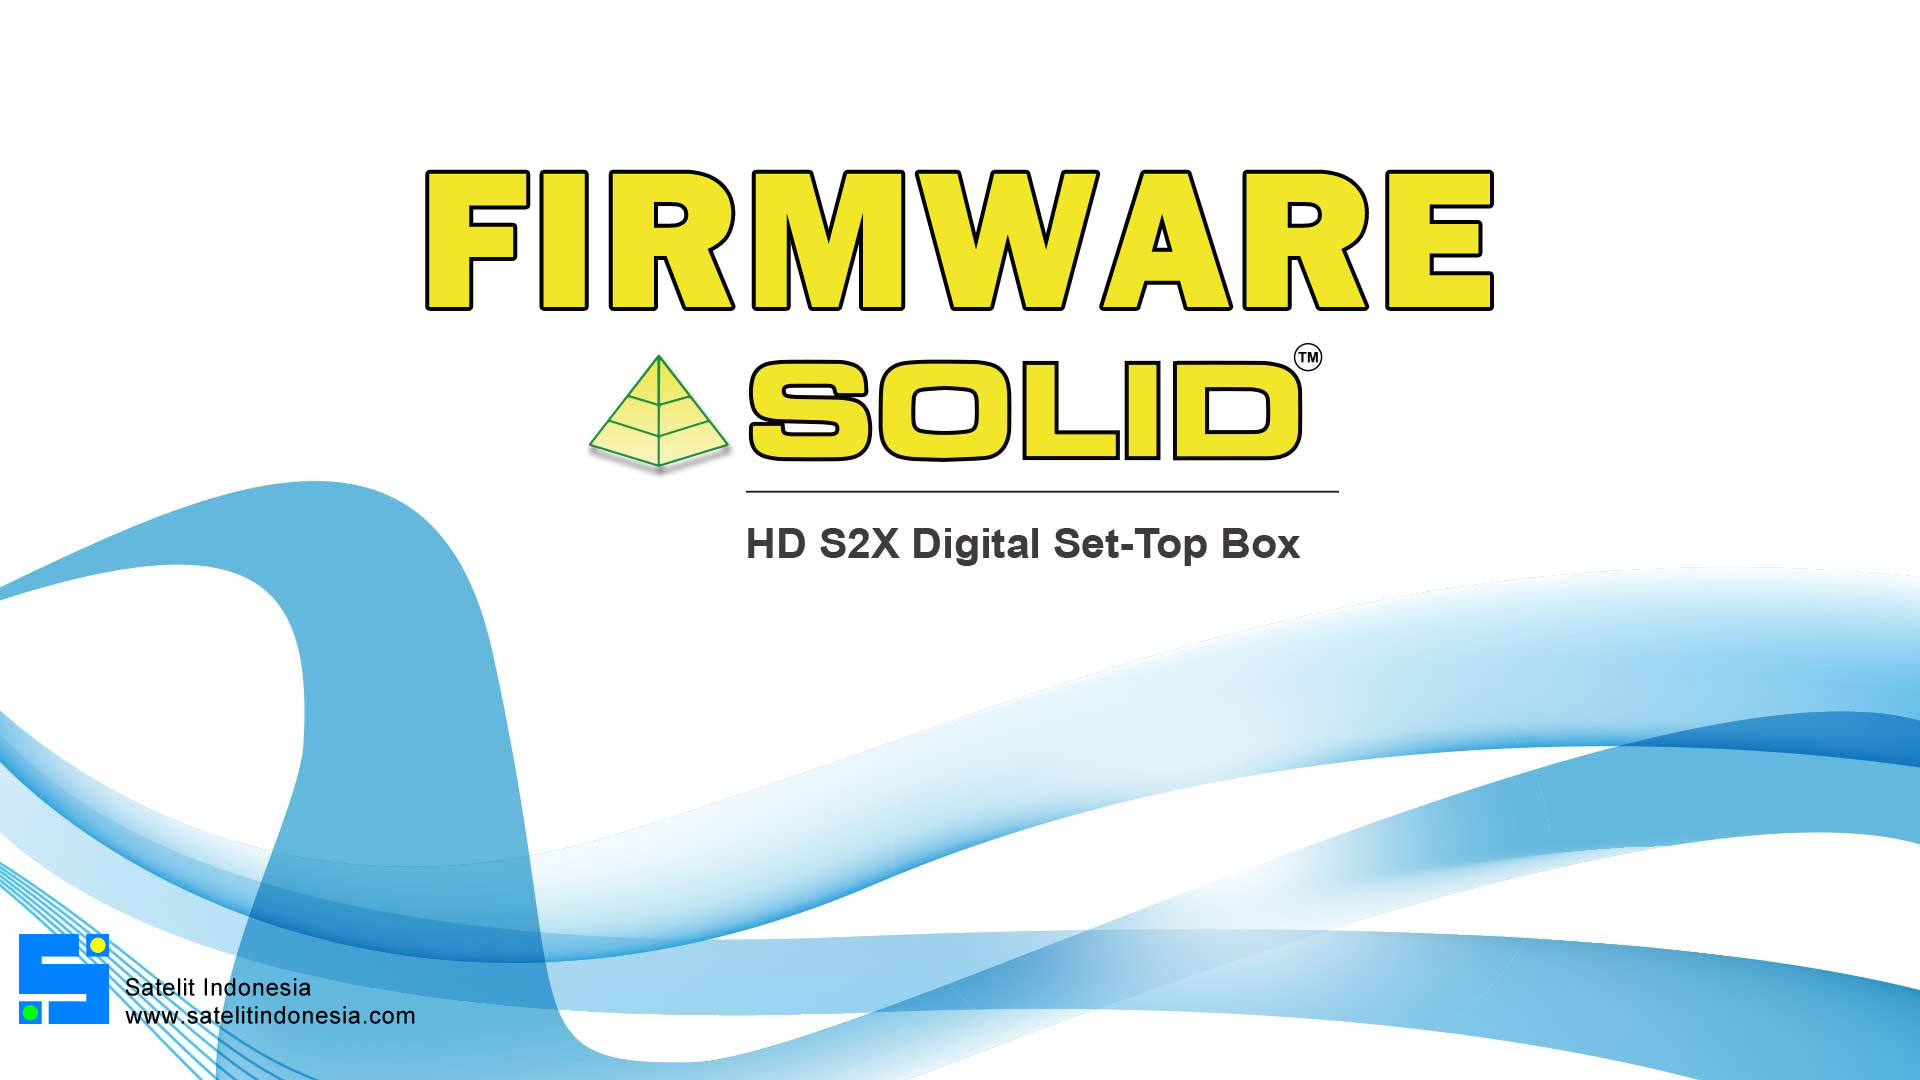 Download Software Solid HDS2X 8181 Set Top Box Firmware Receiver